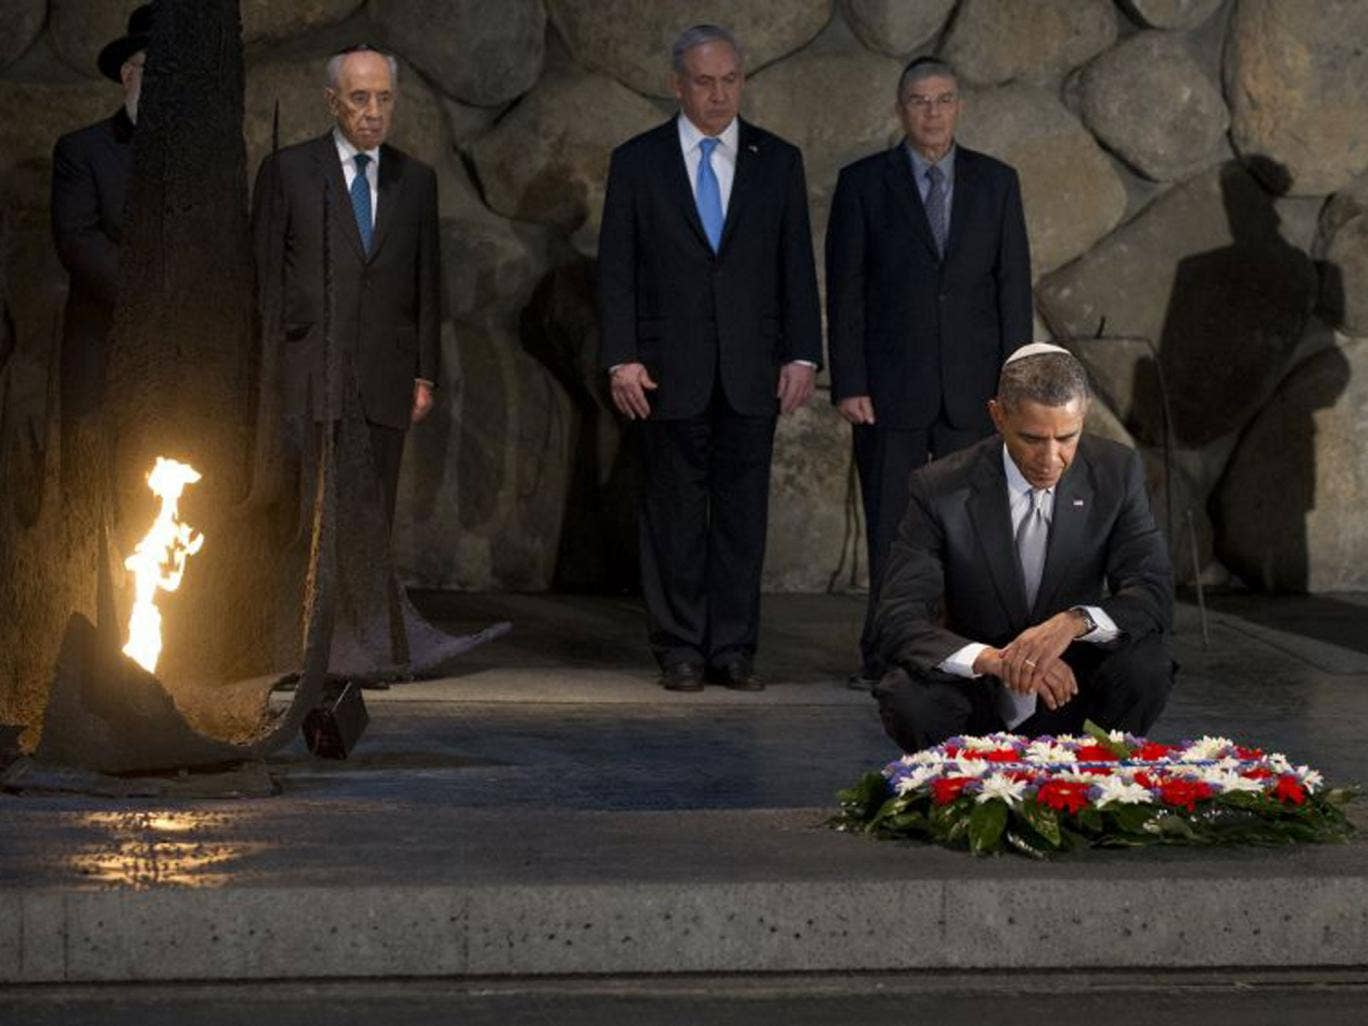 Barack Obama lays a wreath in the Hall of Remembrance at the Yad Vashem Holocaust Museum